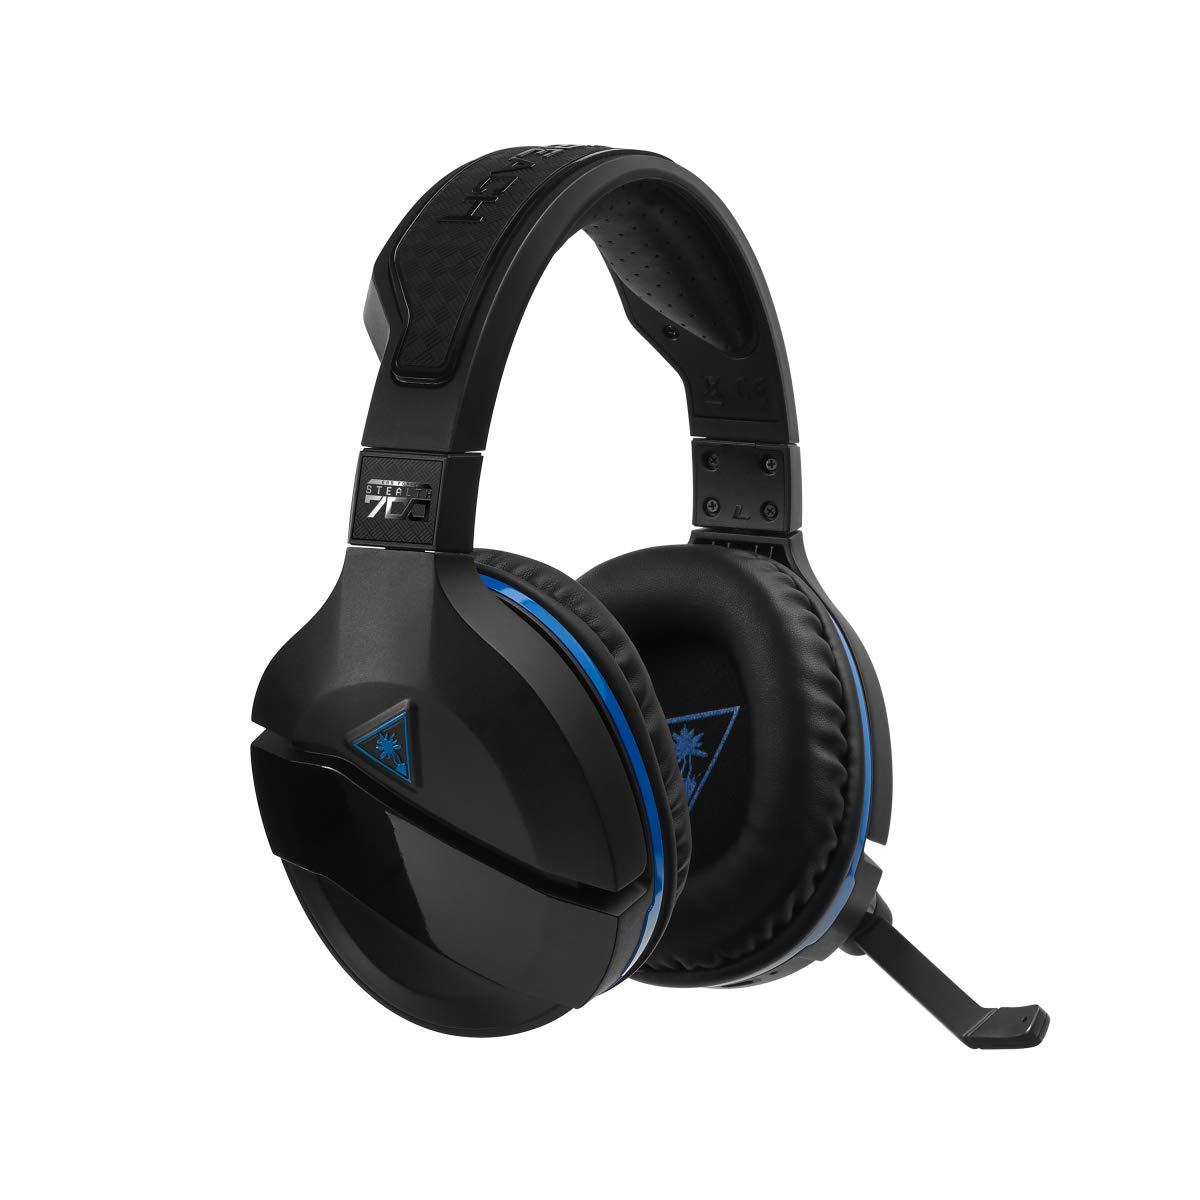 Turtle-Beach-Wireless-Surround-Sound-Gaming-Headset-for-PlayStation-4-Pro-and-PlayStation-4